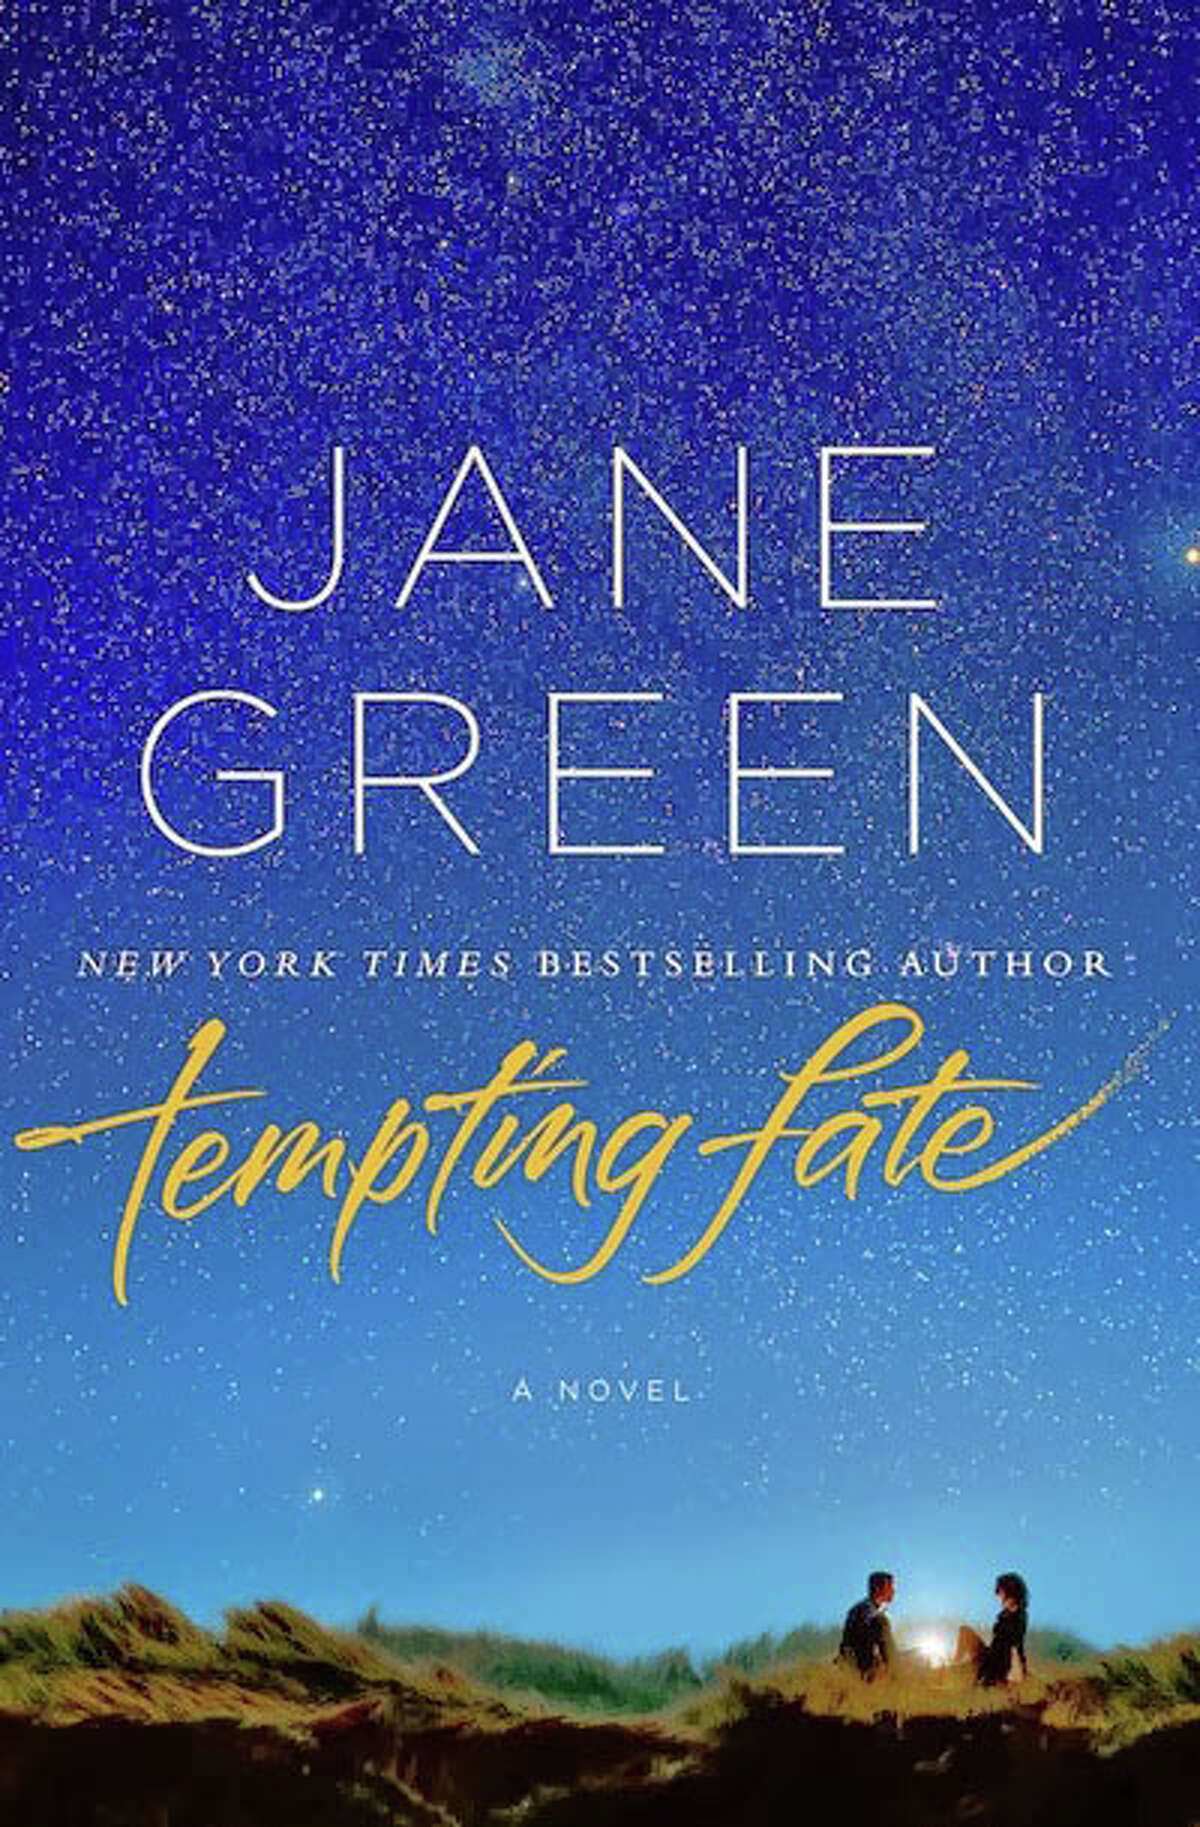 Jane Green will be talking about 'Tempting Fate' at the Darien Library on March 25, R.J. Julia Booksellers on March 30 and the Westport Country Playhouse on April 2.